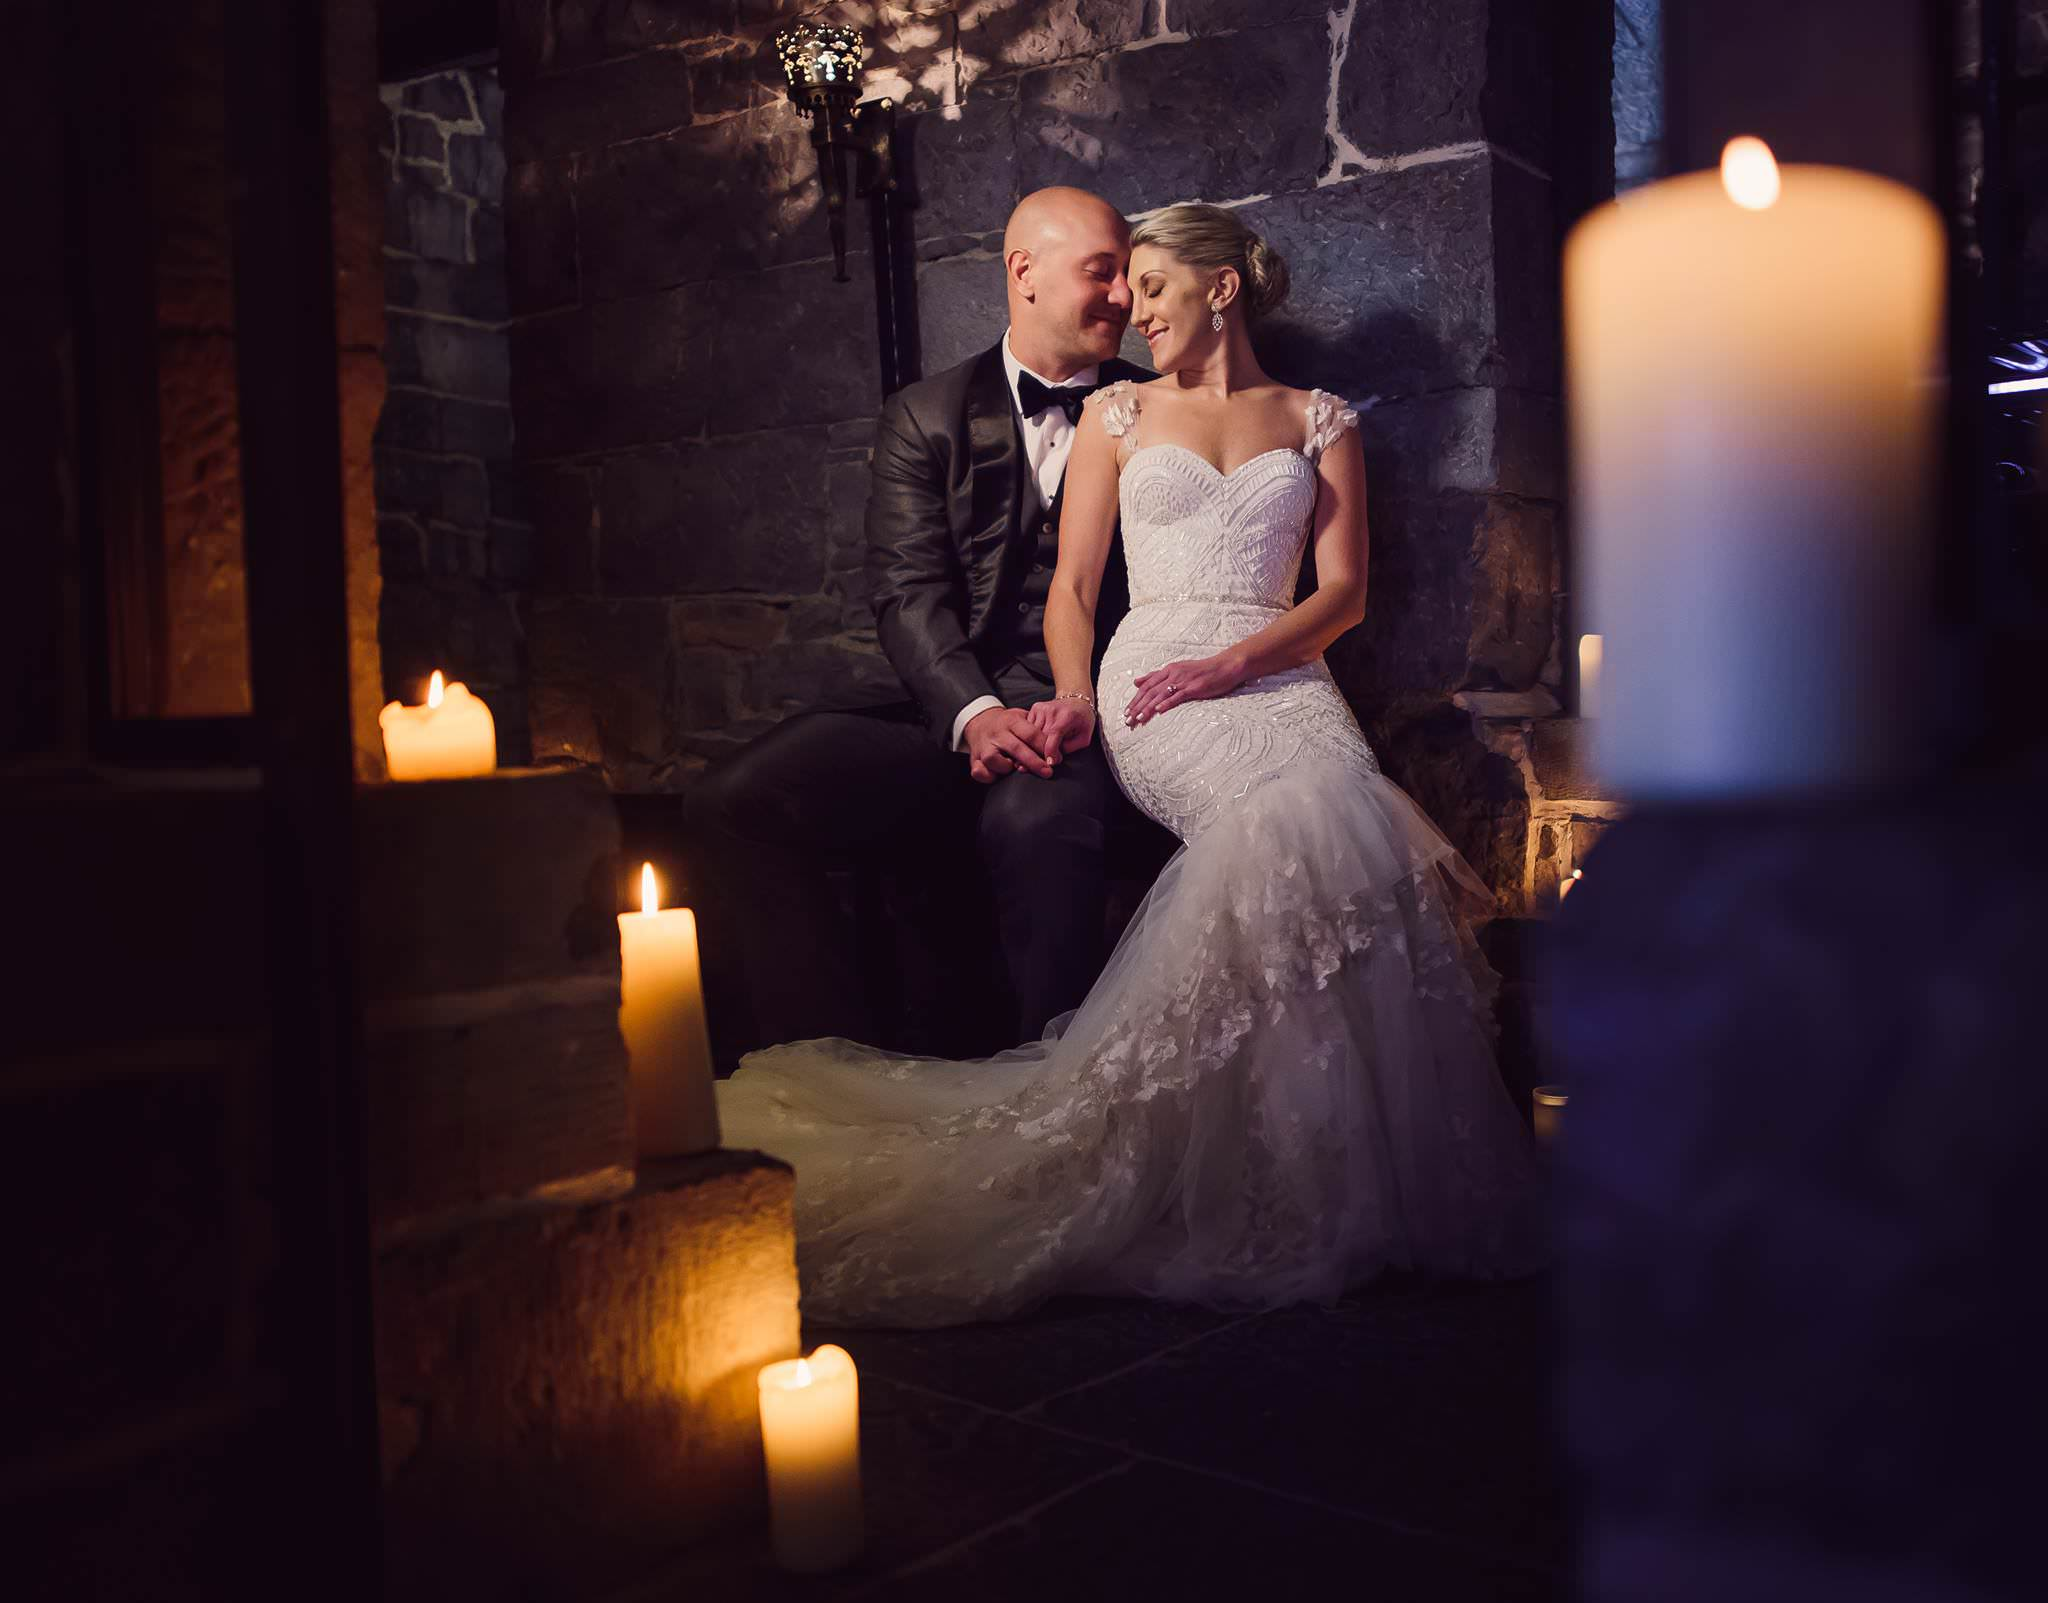 bride-groom-surrounded-by-candles